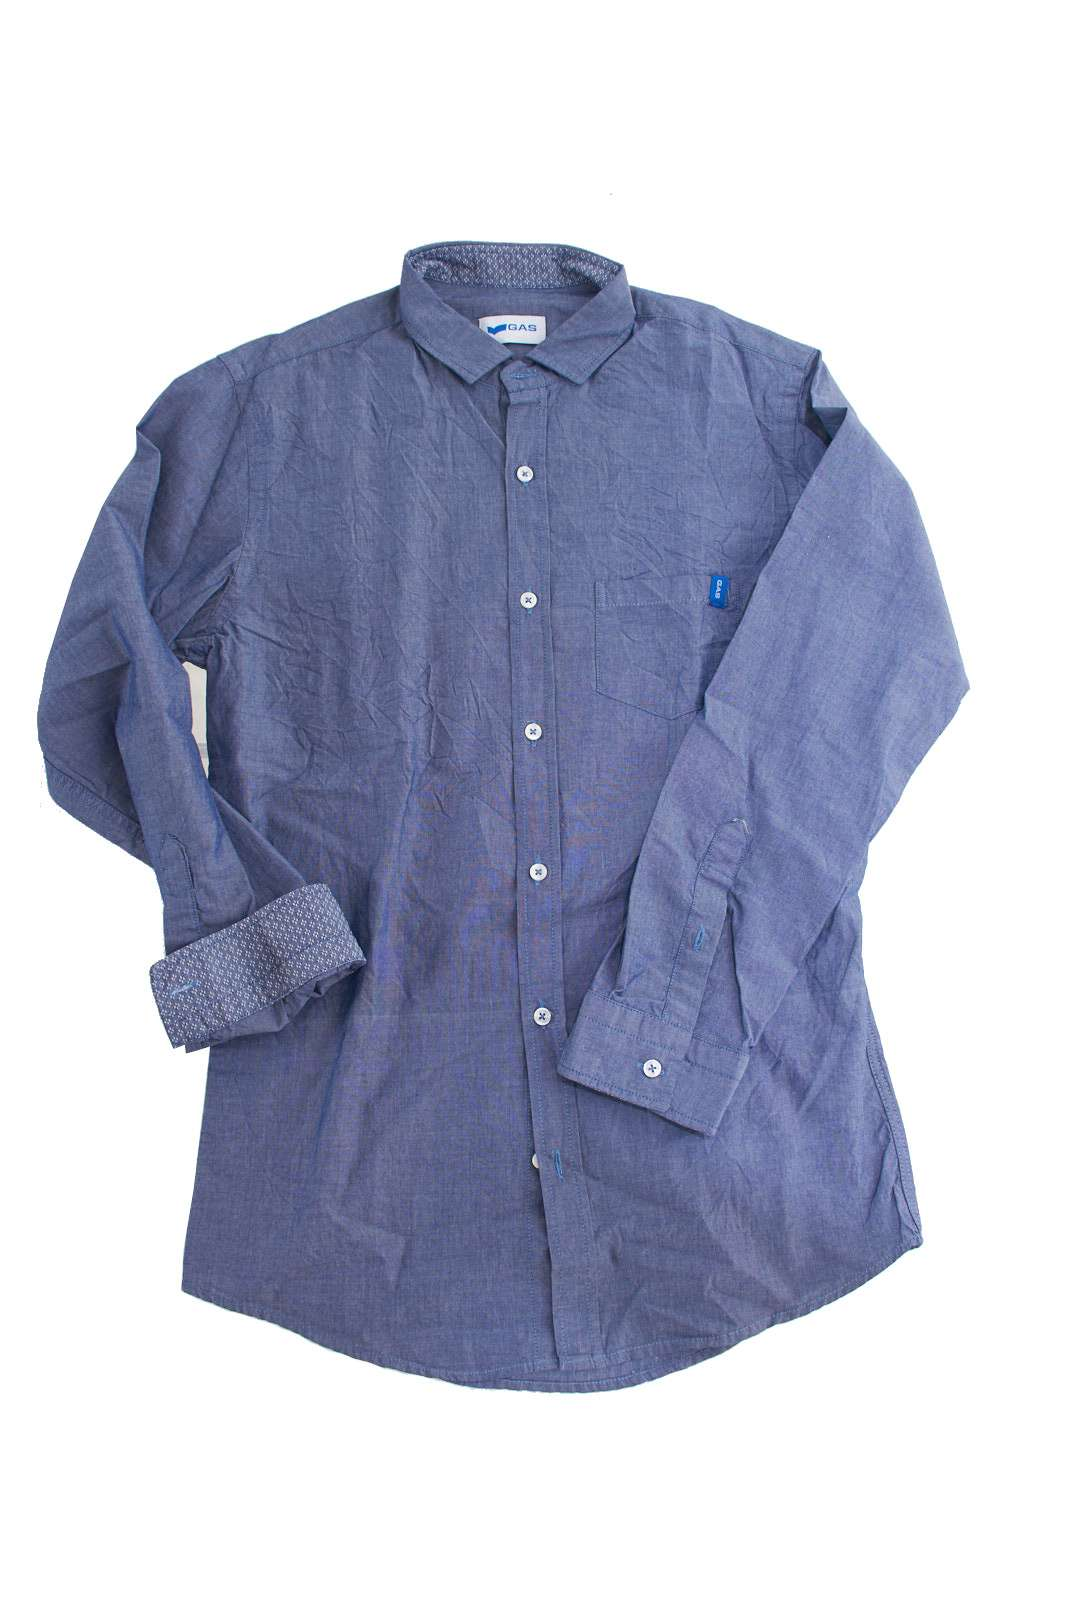 https://www.parmax.com/media/catalog/product/a/i/PE-outelt_parmax-camicia-bambino-Gas-GB2774-A.jpg